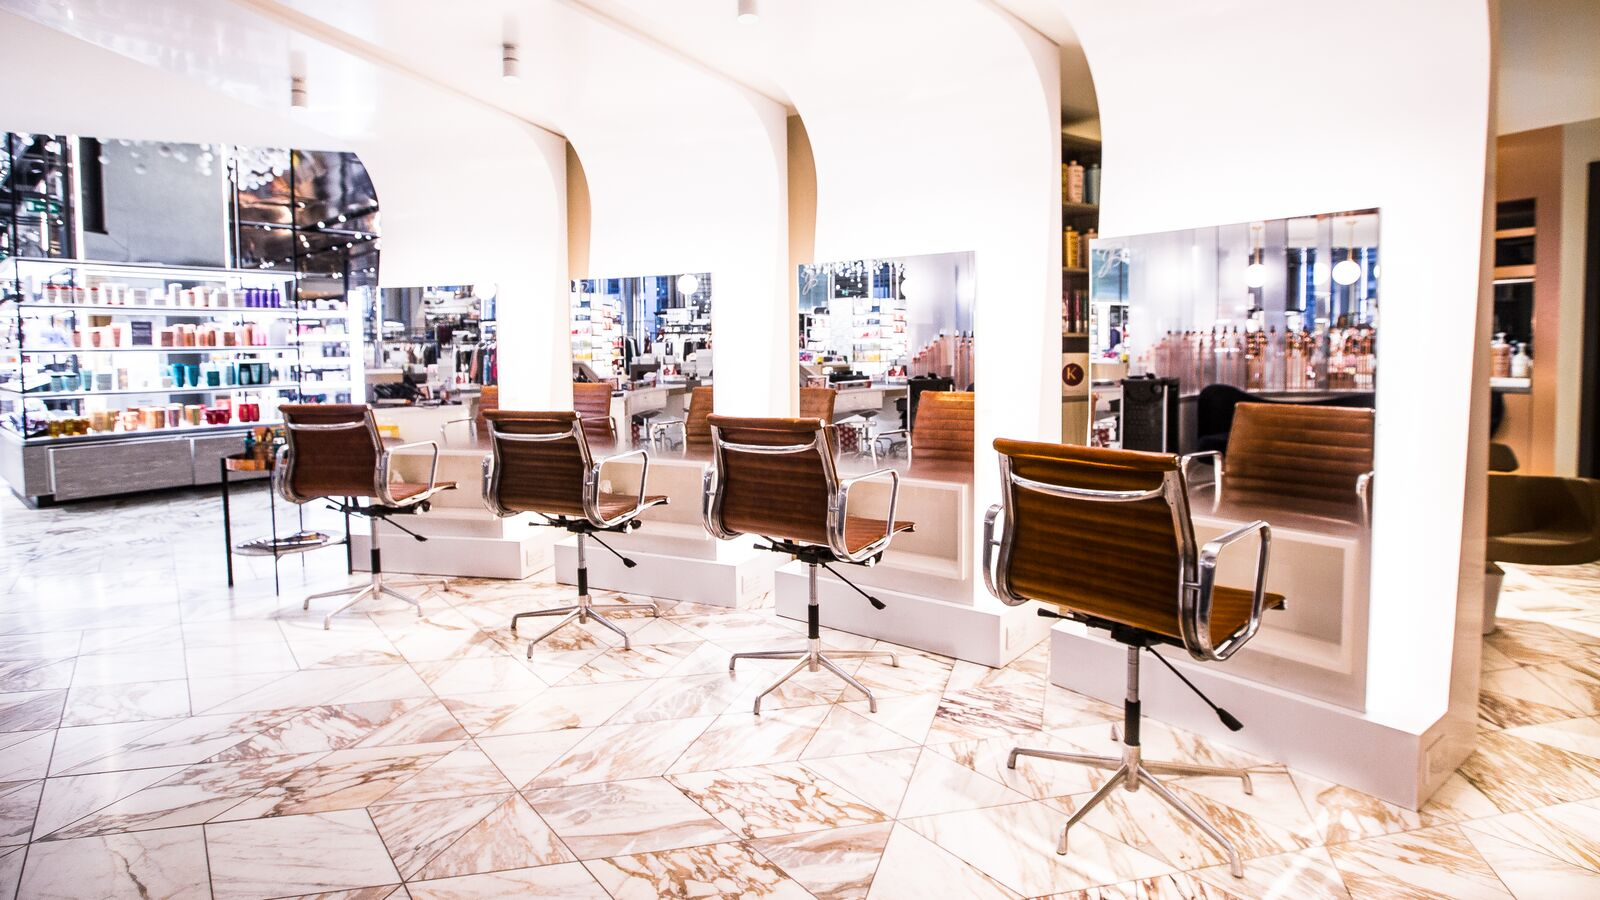 Harvey Nichols Hair Salon - James Bushell Hair Salon 6c6ada0c3dbc9